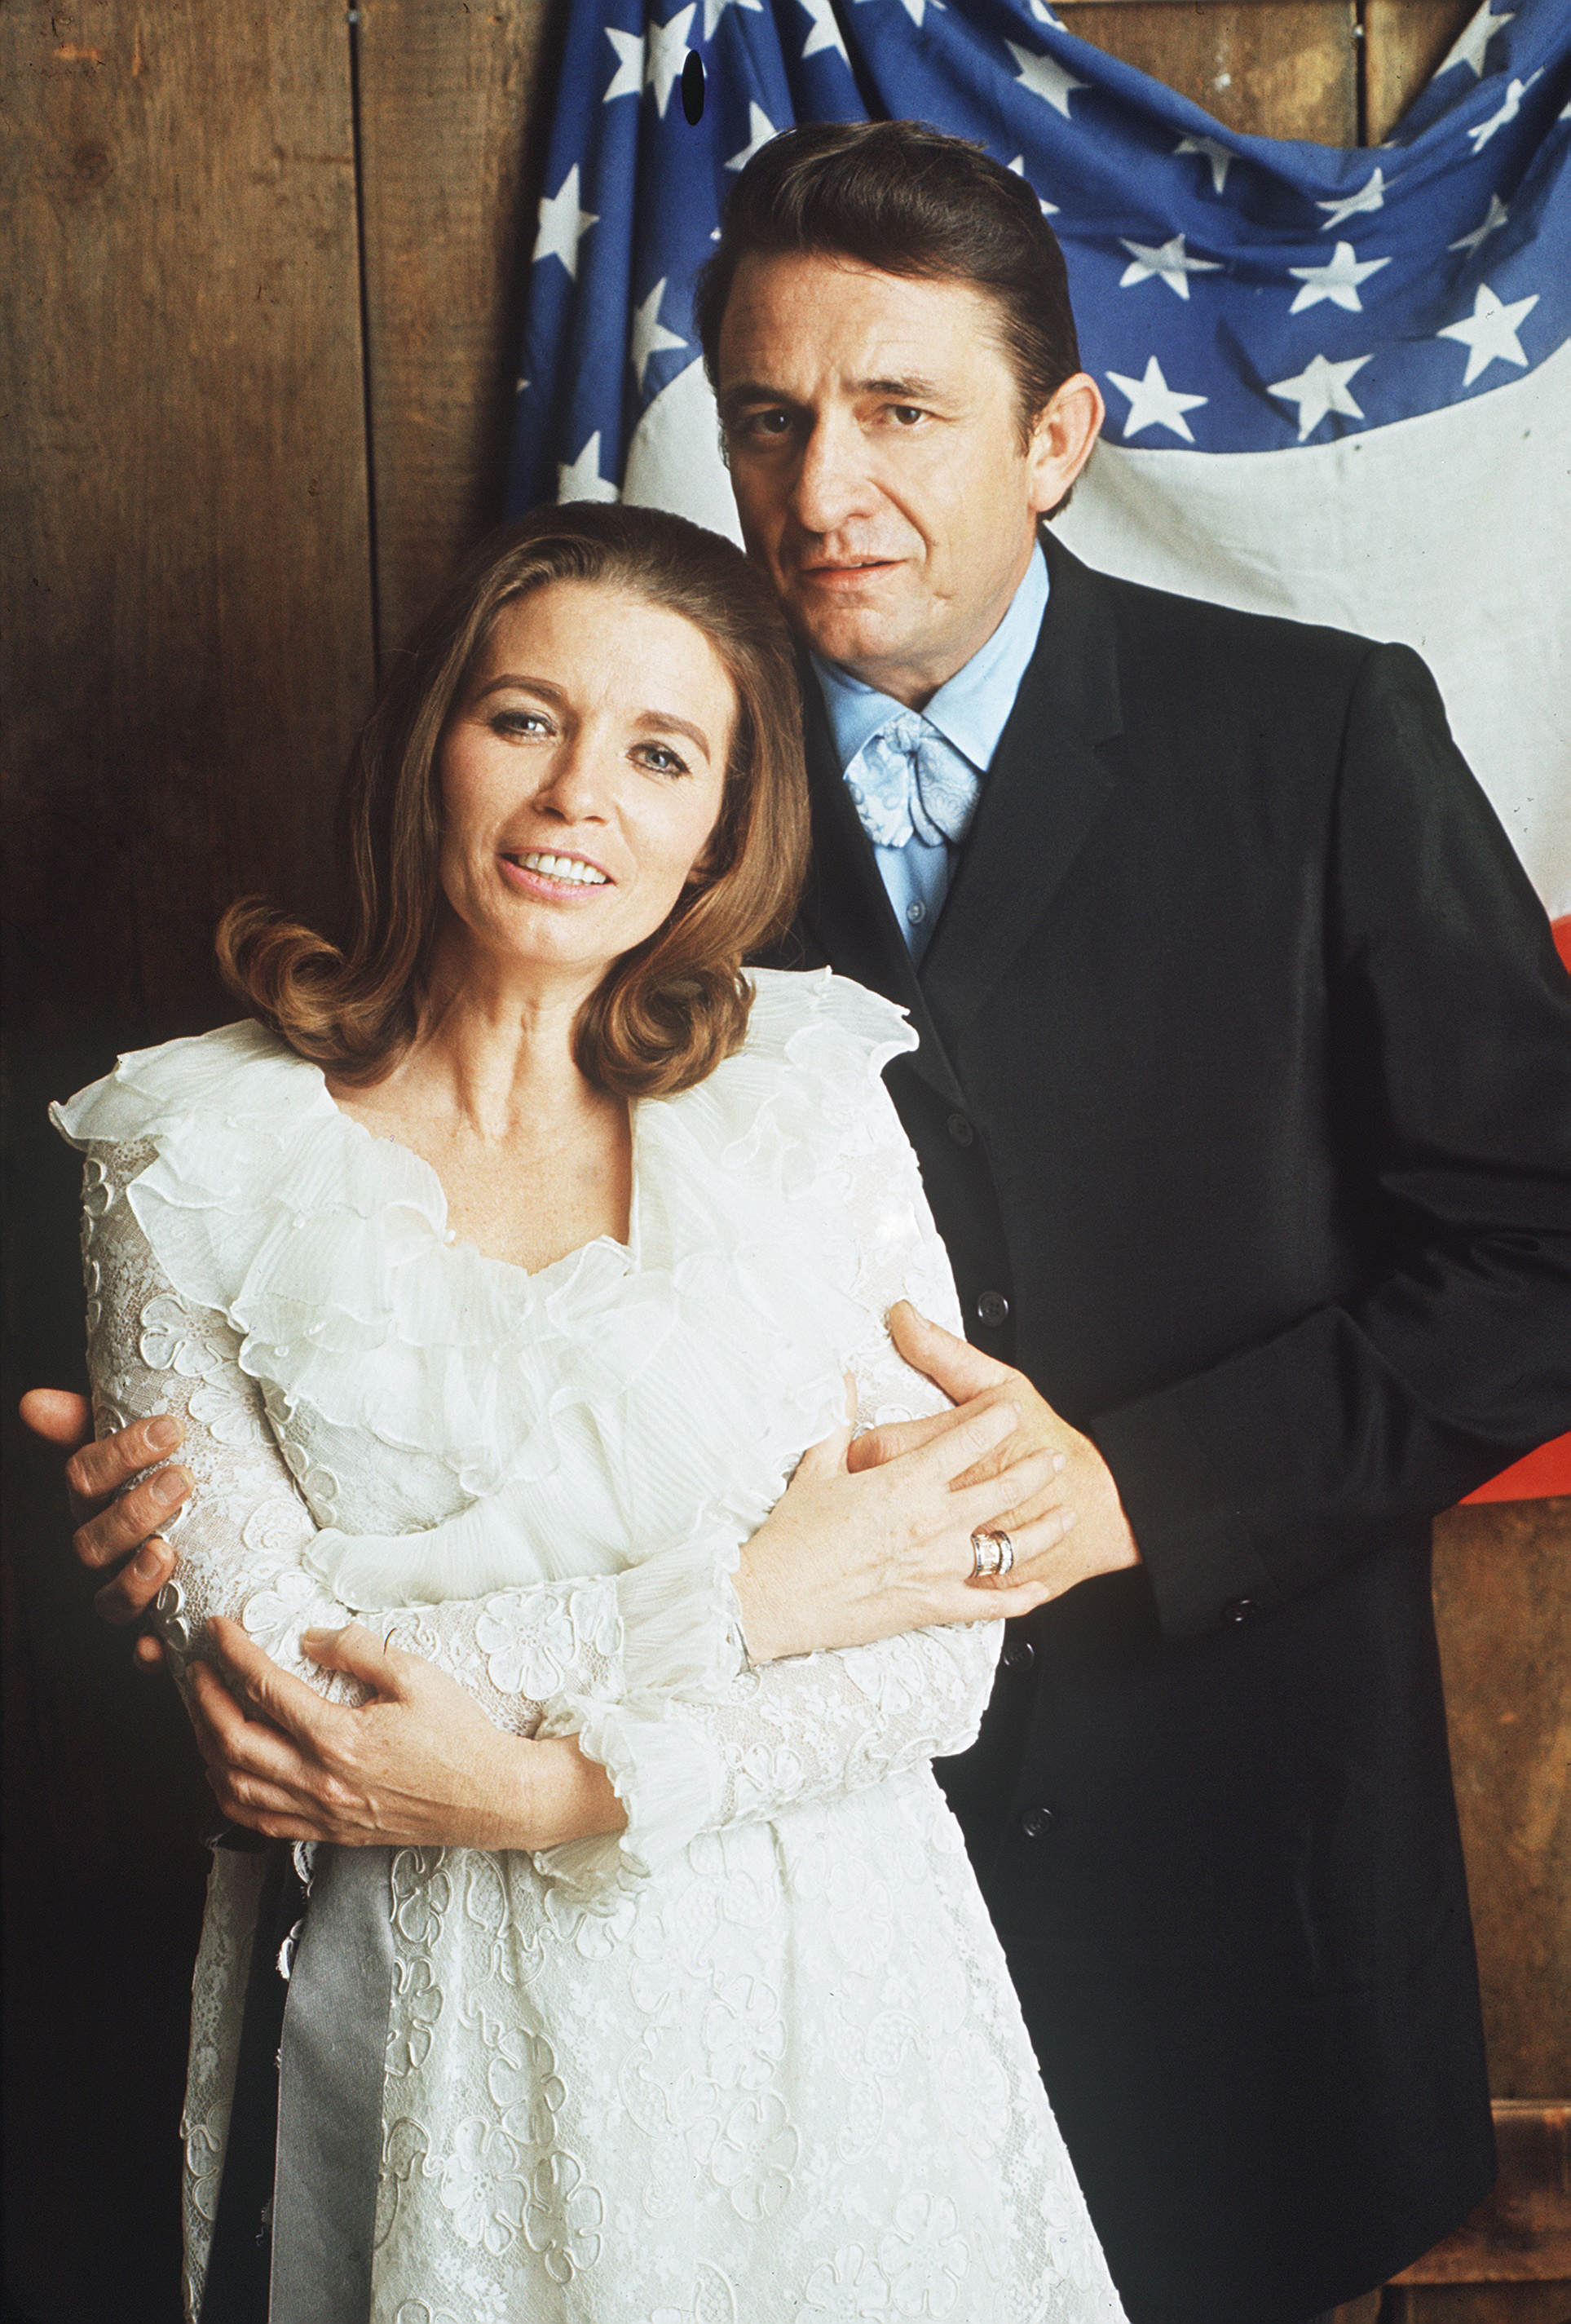 Johnny Cash & June Carter Live On in the Memory of Their ...